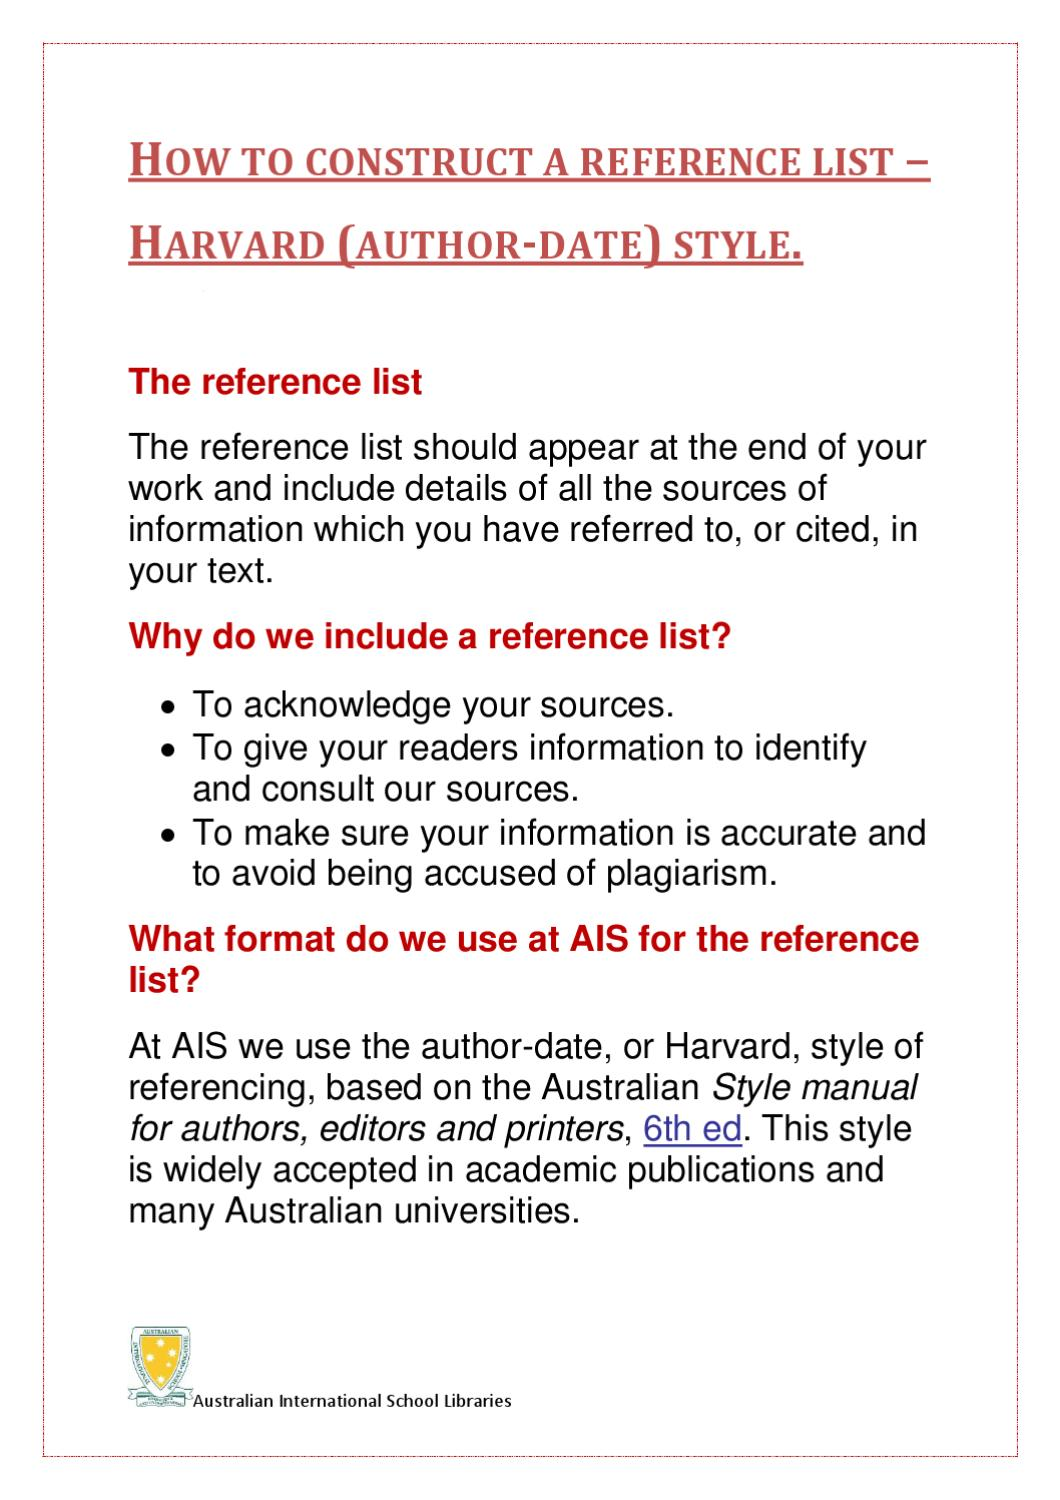 reference netflix series harvard